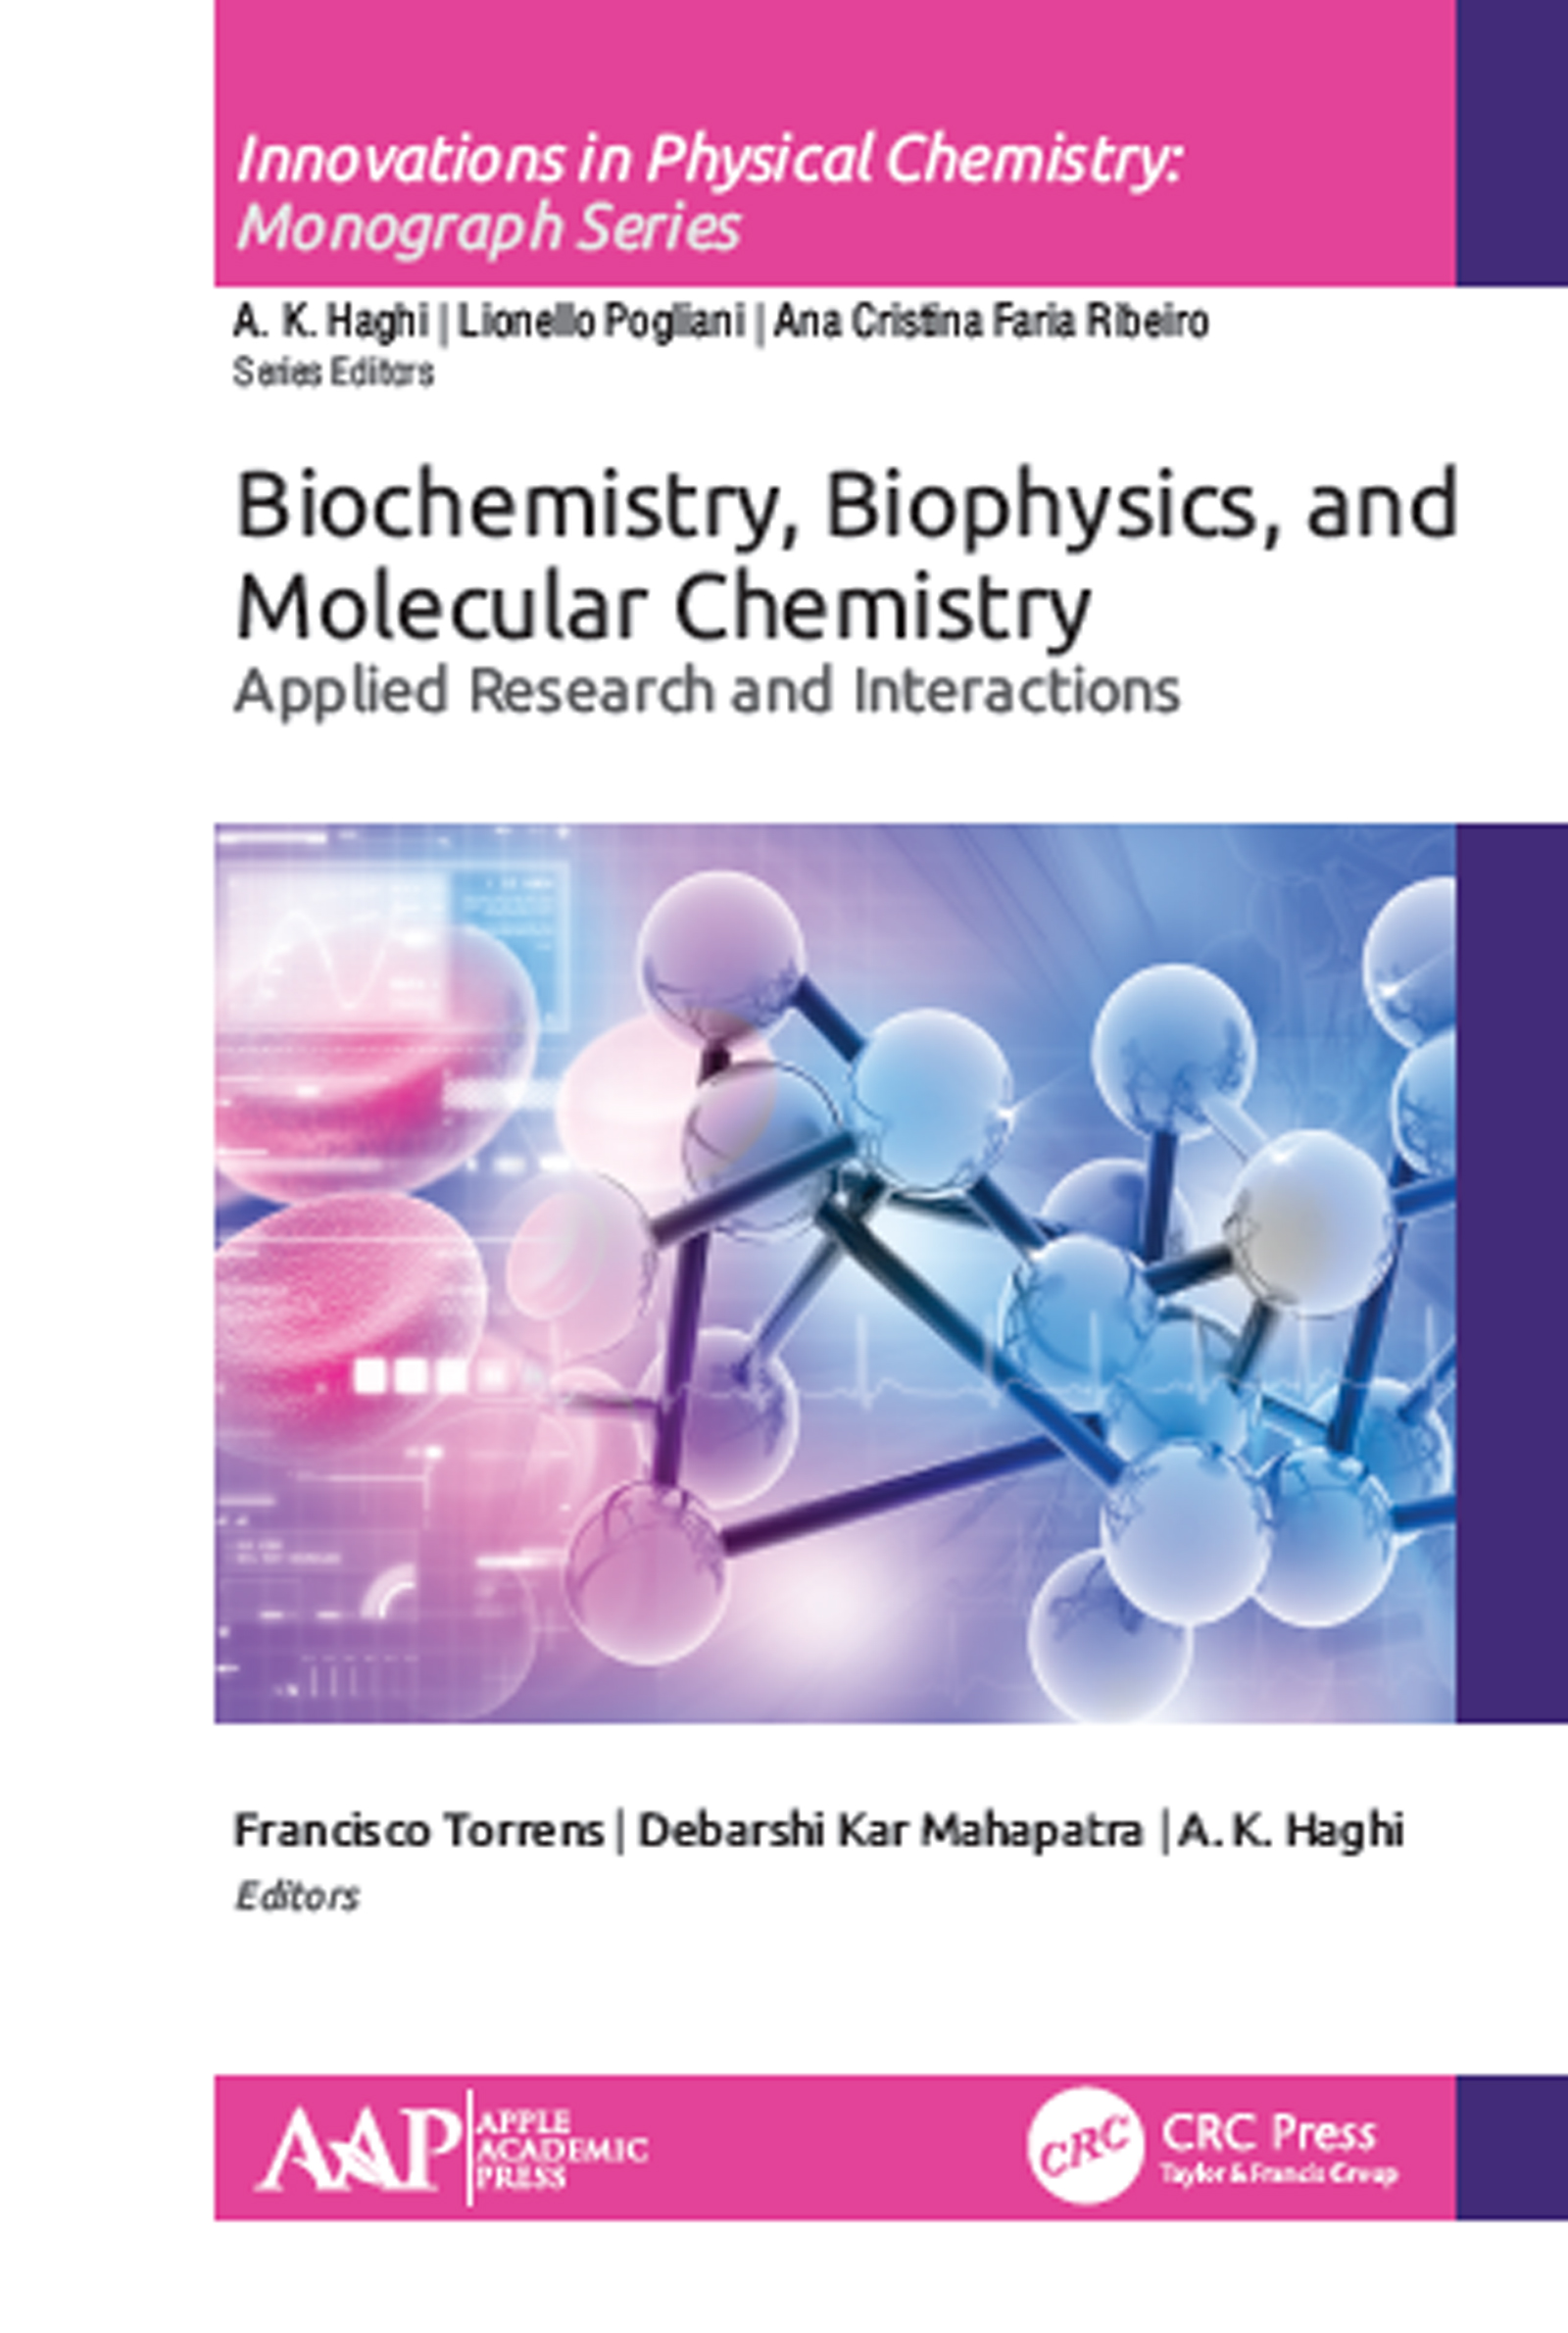 Biochemistry, Biophysics, and Molecular Chemistry: Applied Research and Interactions book cover